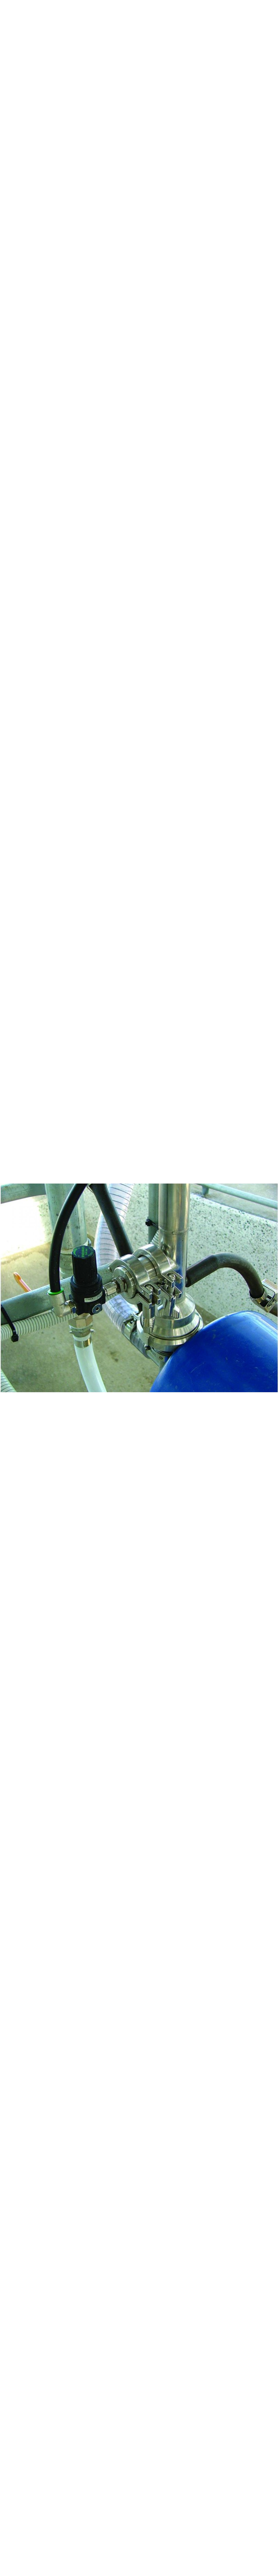 Pneumatic Milk Recovery